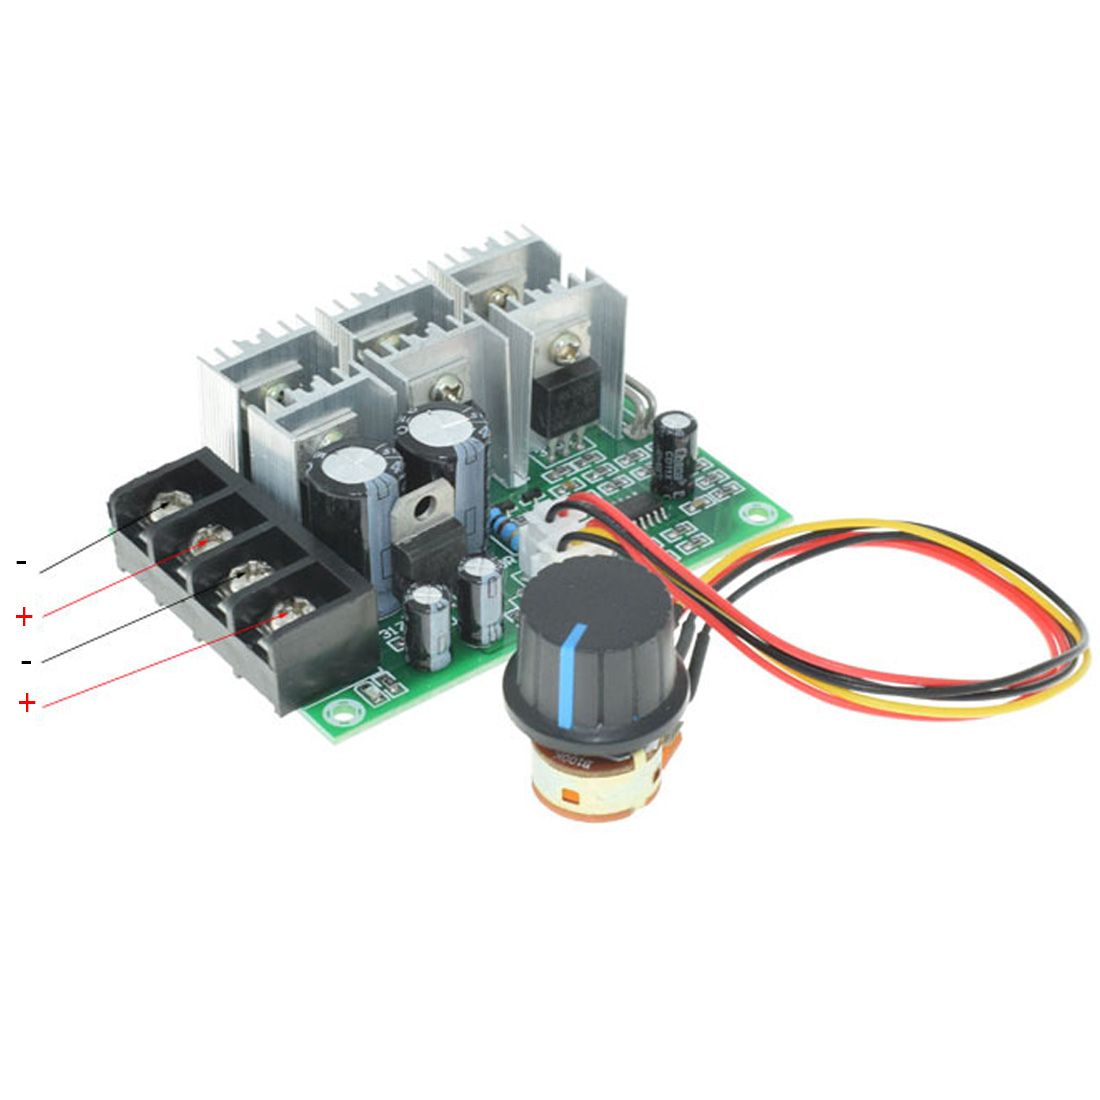 Low Voltage Protection Motor Speed Governor  12/24/36V Soft Start Plugging Protection Motor Speed Controller DC Brushes RetarderLow Voltage Protection Motor Speed Governor  12/24/36V Soft Start Plugging Protection Motor Speed Controller DC Brushes Retarder